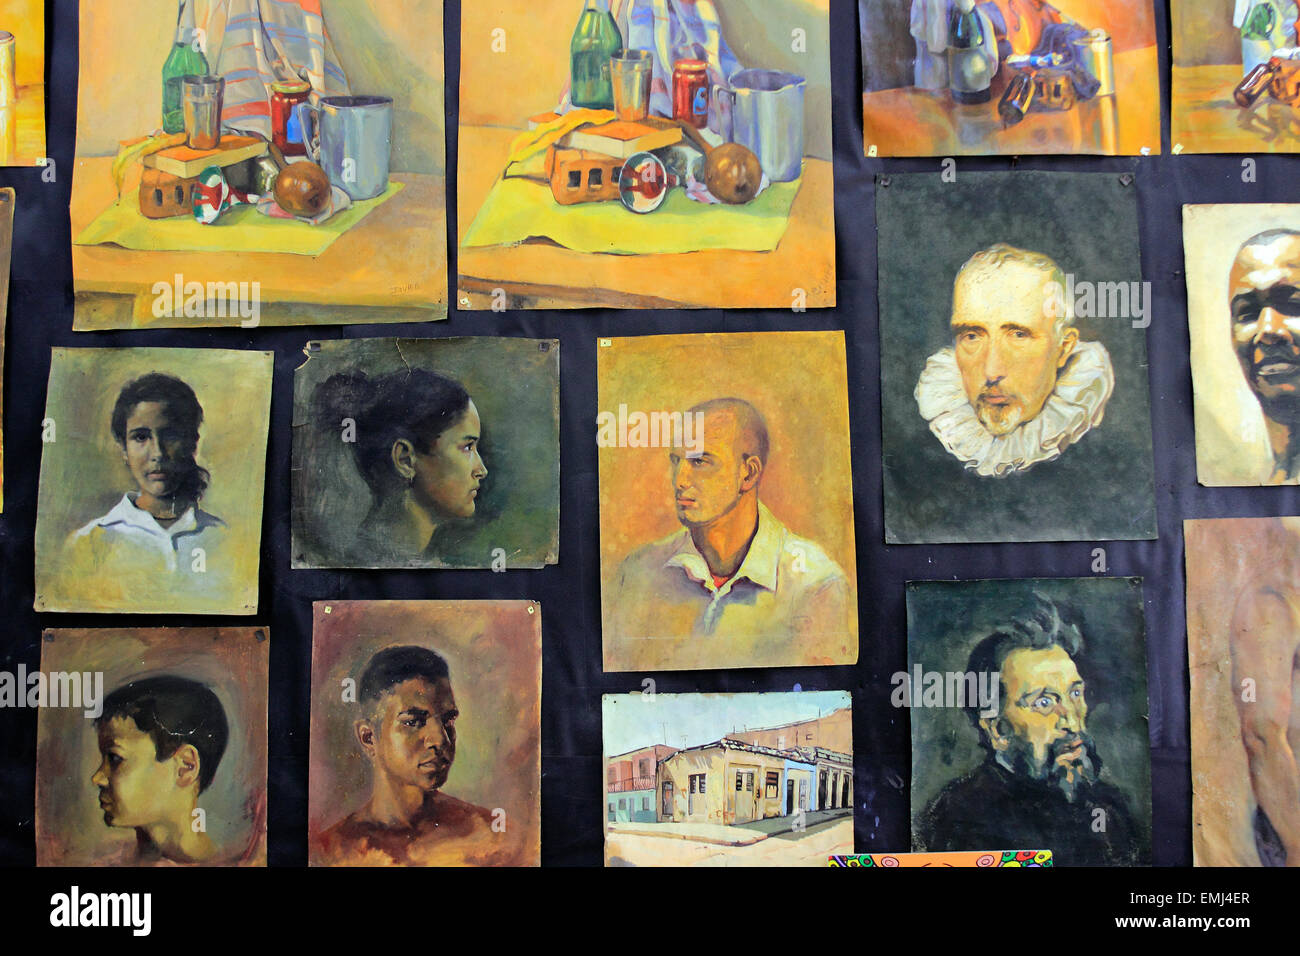 Paintings by students and faculty on display Benny More School of the Arts Cienfuegos Cuba - Stock Image